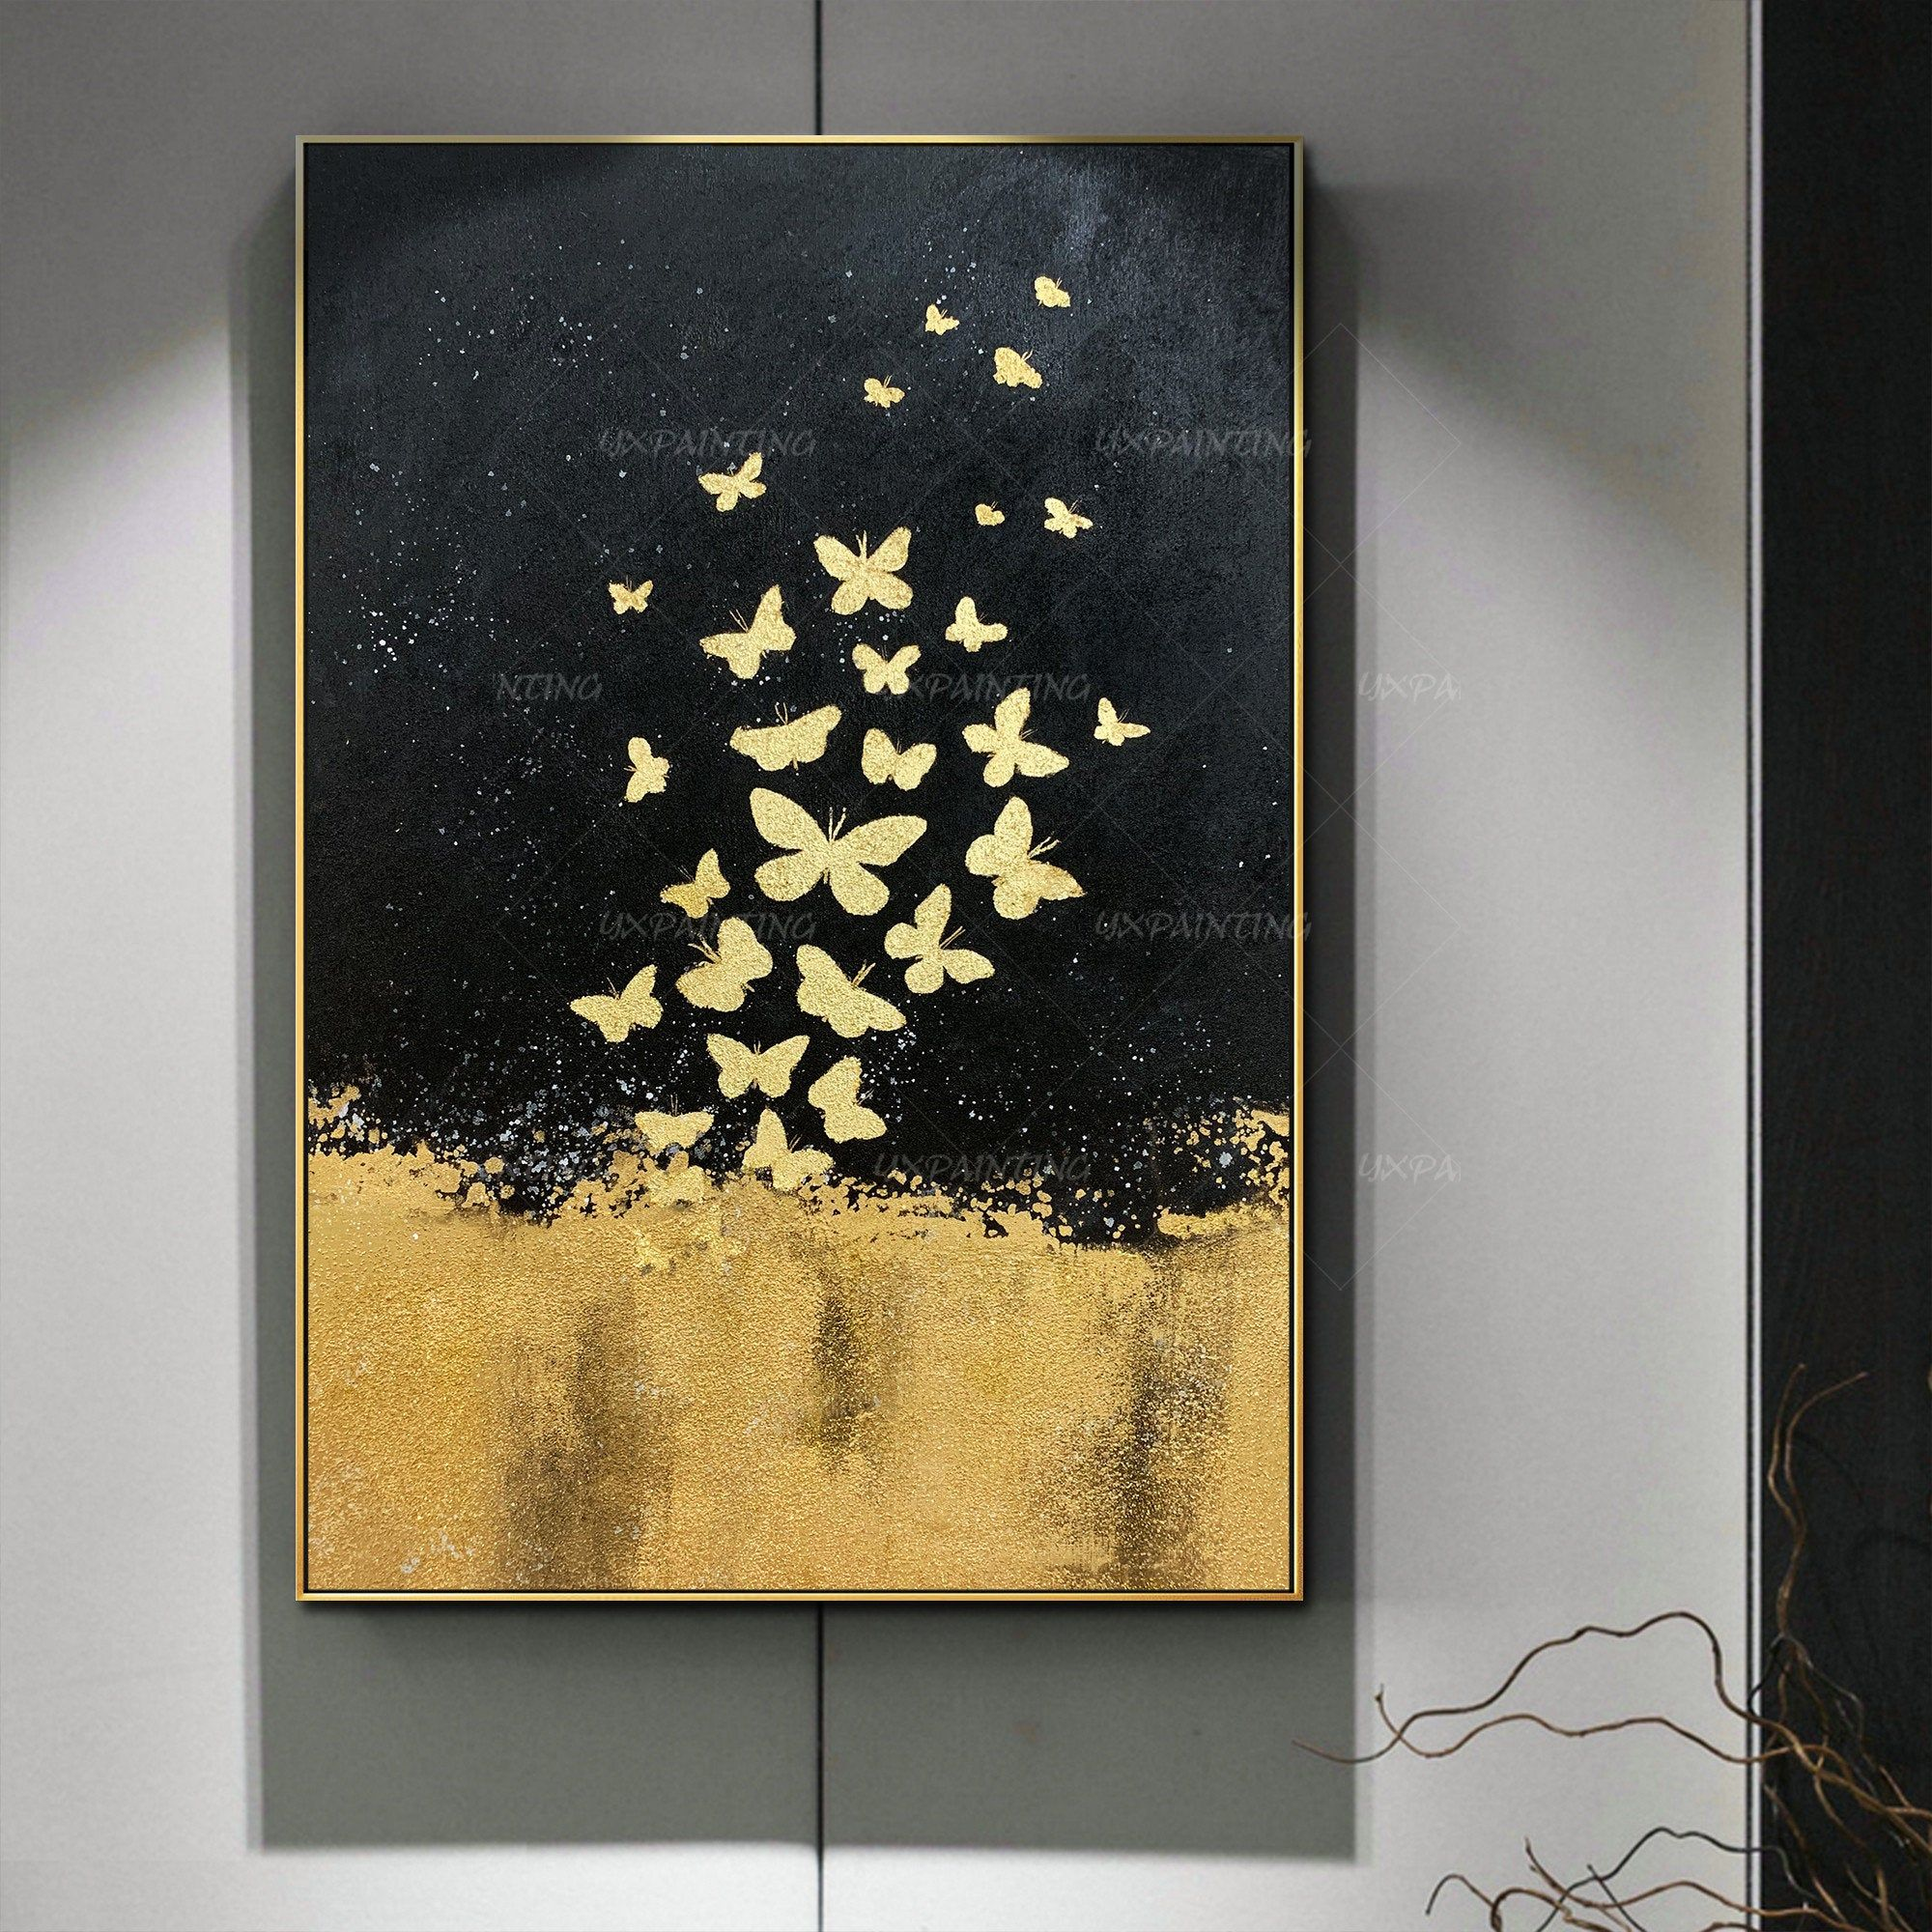 Gold Leaf And Silver Leaf Set Of 2 Wall Art Abstract Butterfly Etsy In 2021 Butterfly Painting Canvas Painting Christmas Paintings On Canvas